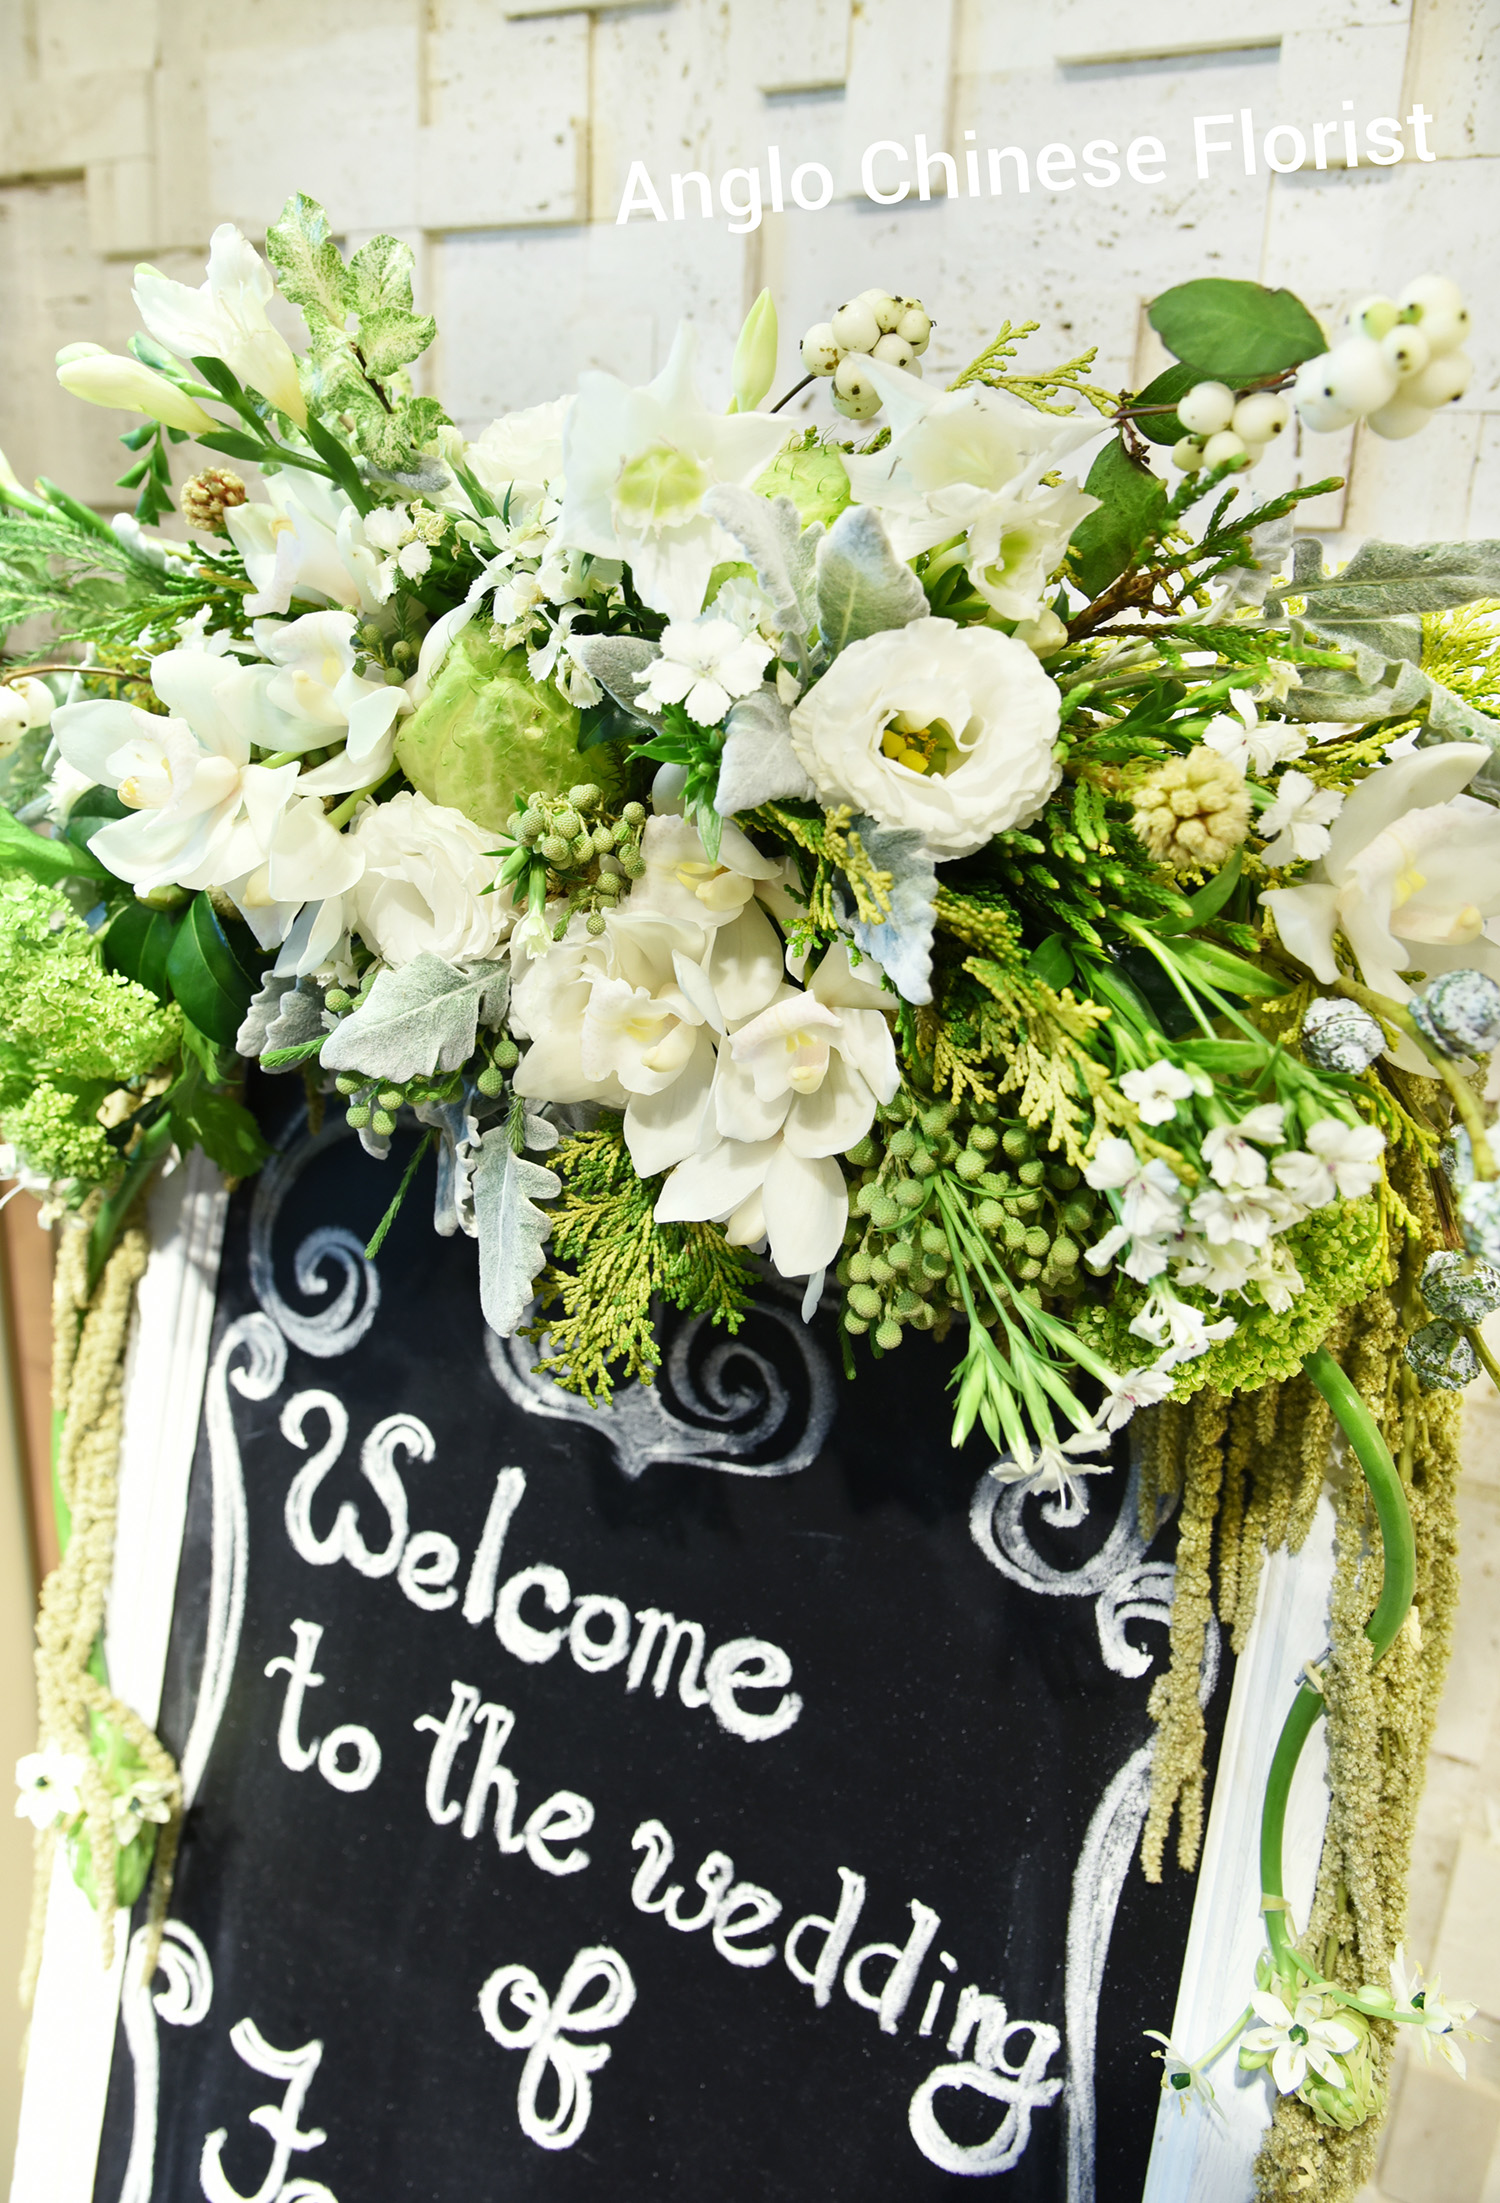 Garden Wedding decoration, blackboard signage design tailor made for client